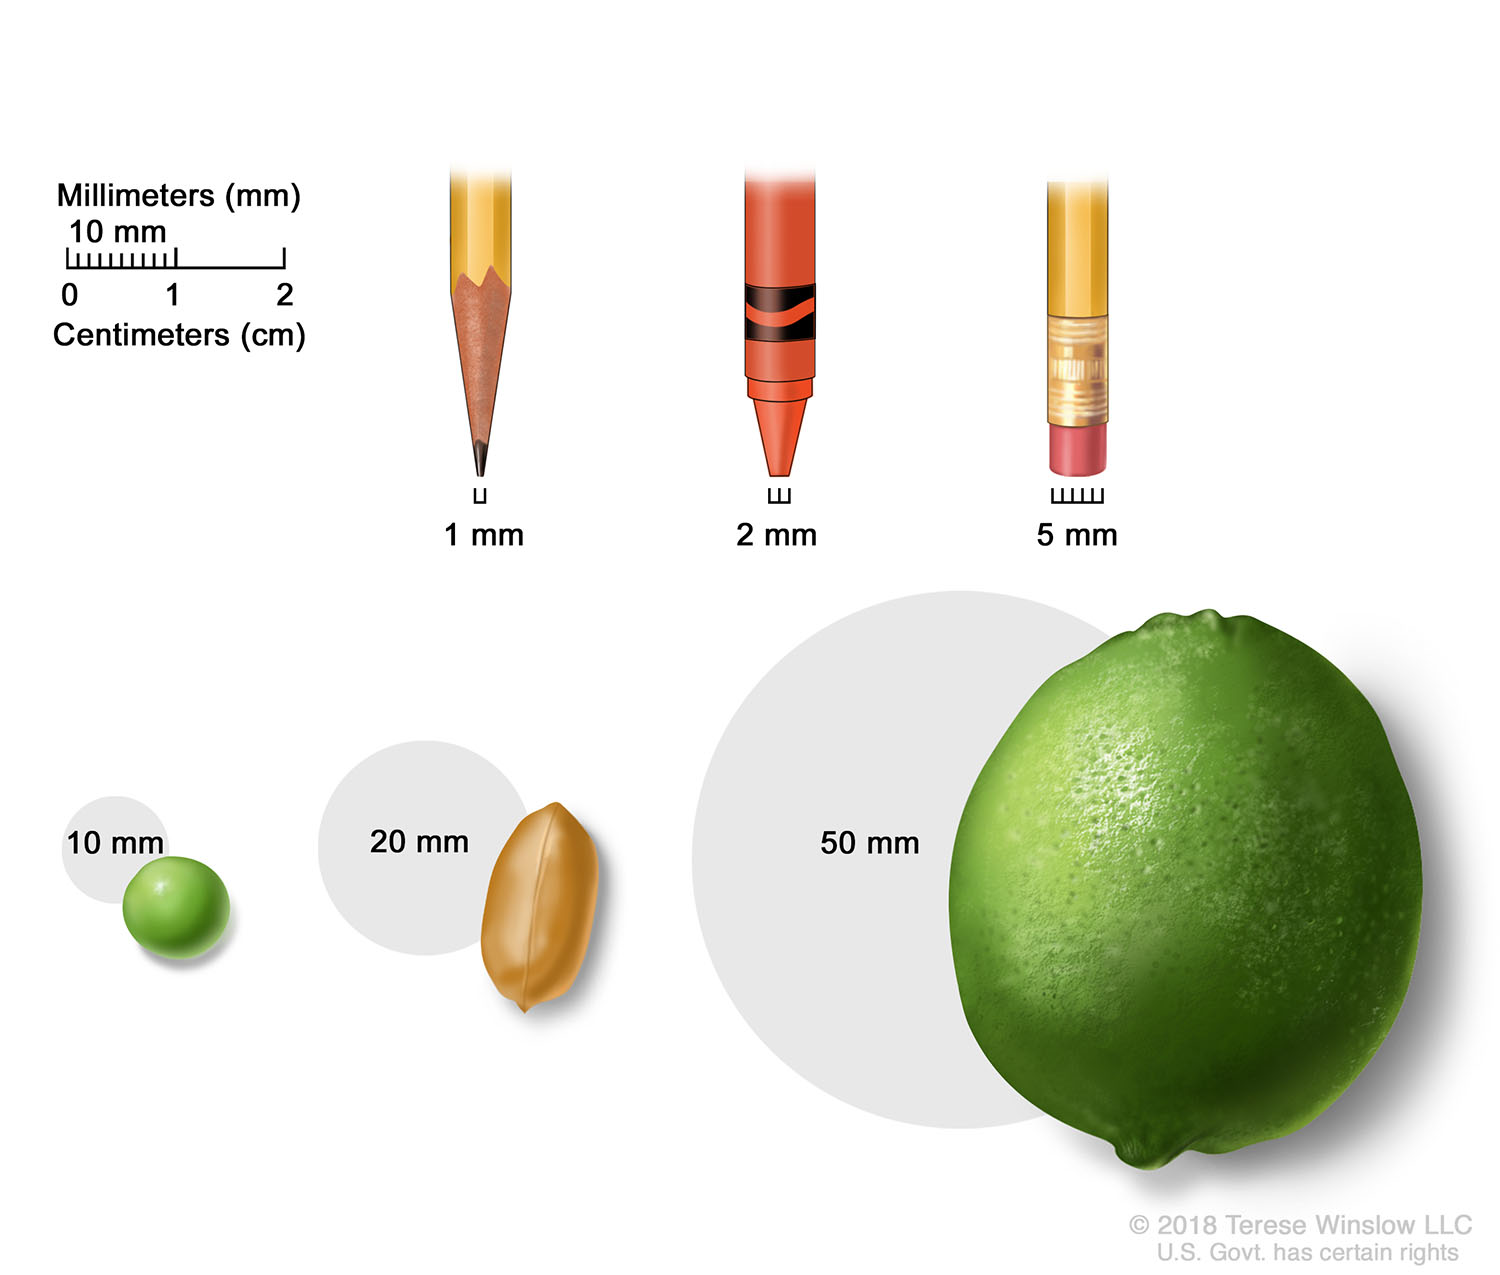 Tumor Sizes in Millimeters and Centimeters